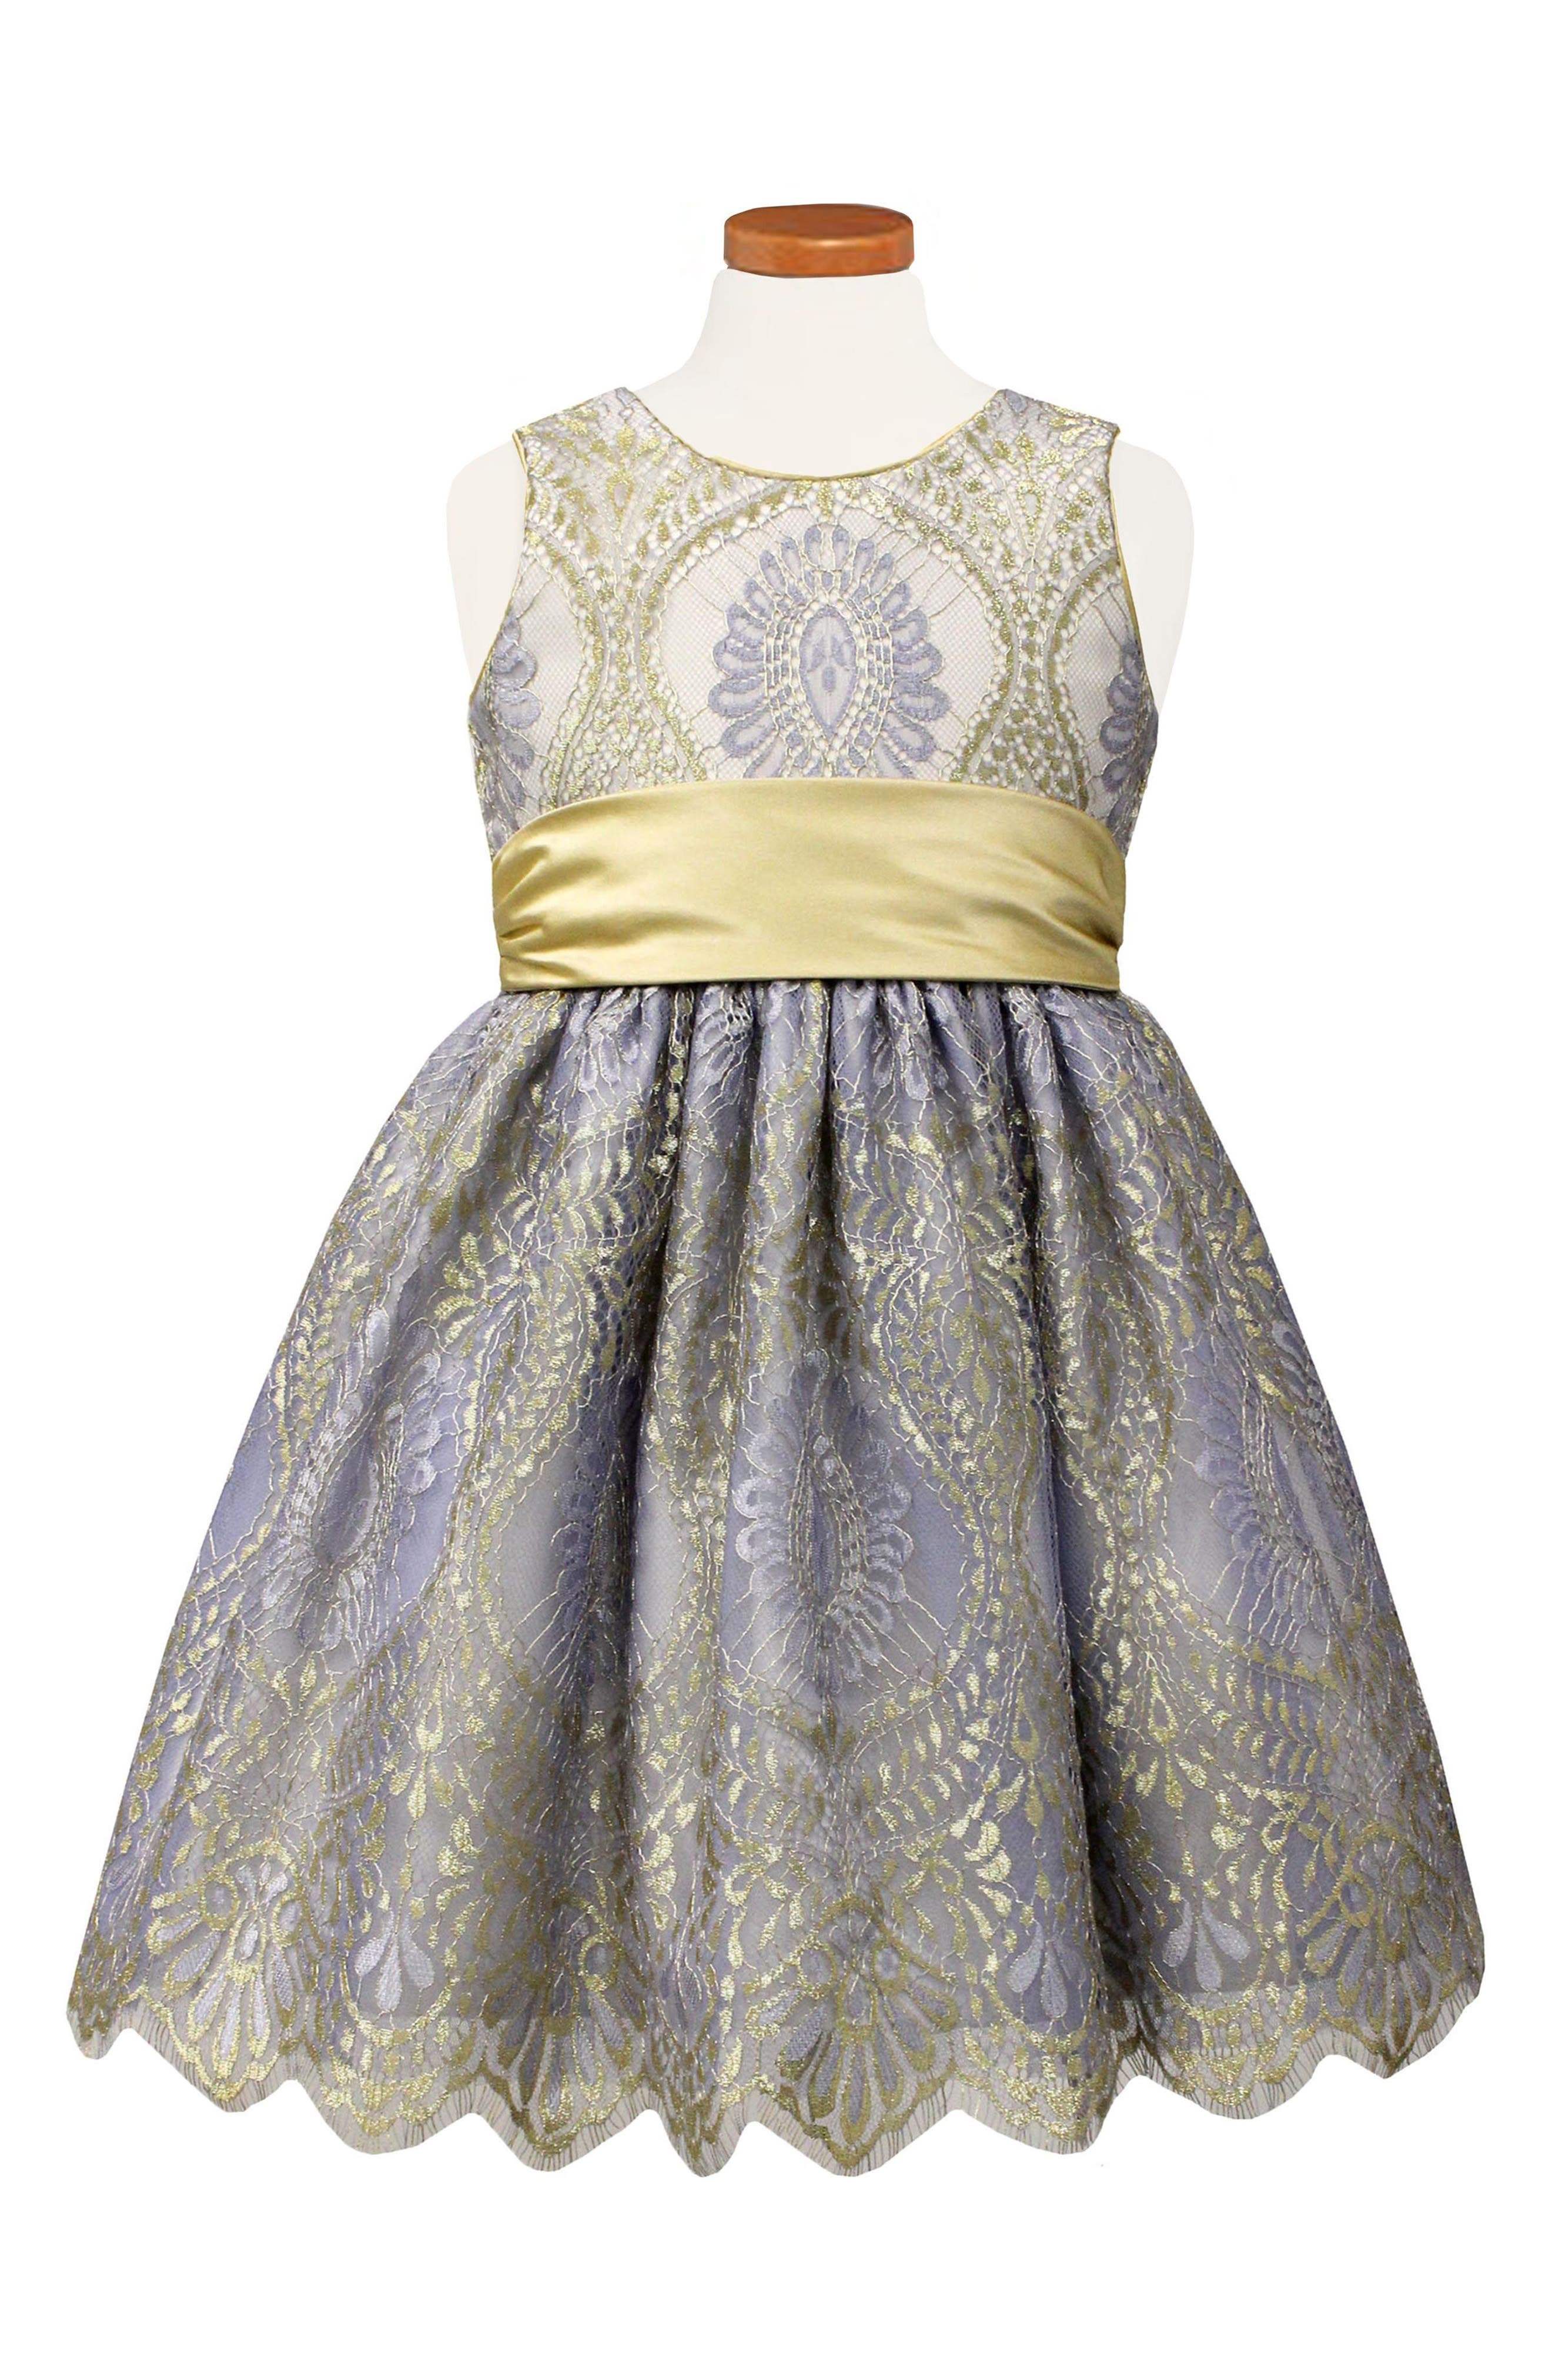 Sorbet Lace Party Dress (Toddler Girls & Little Girls)